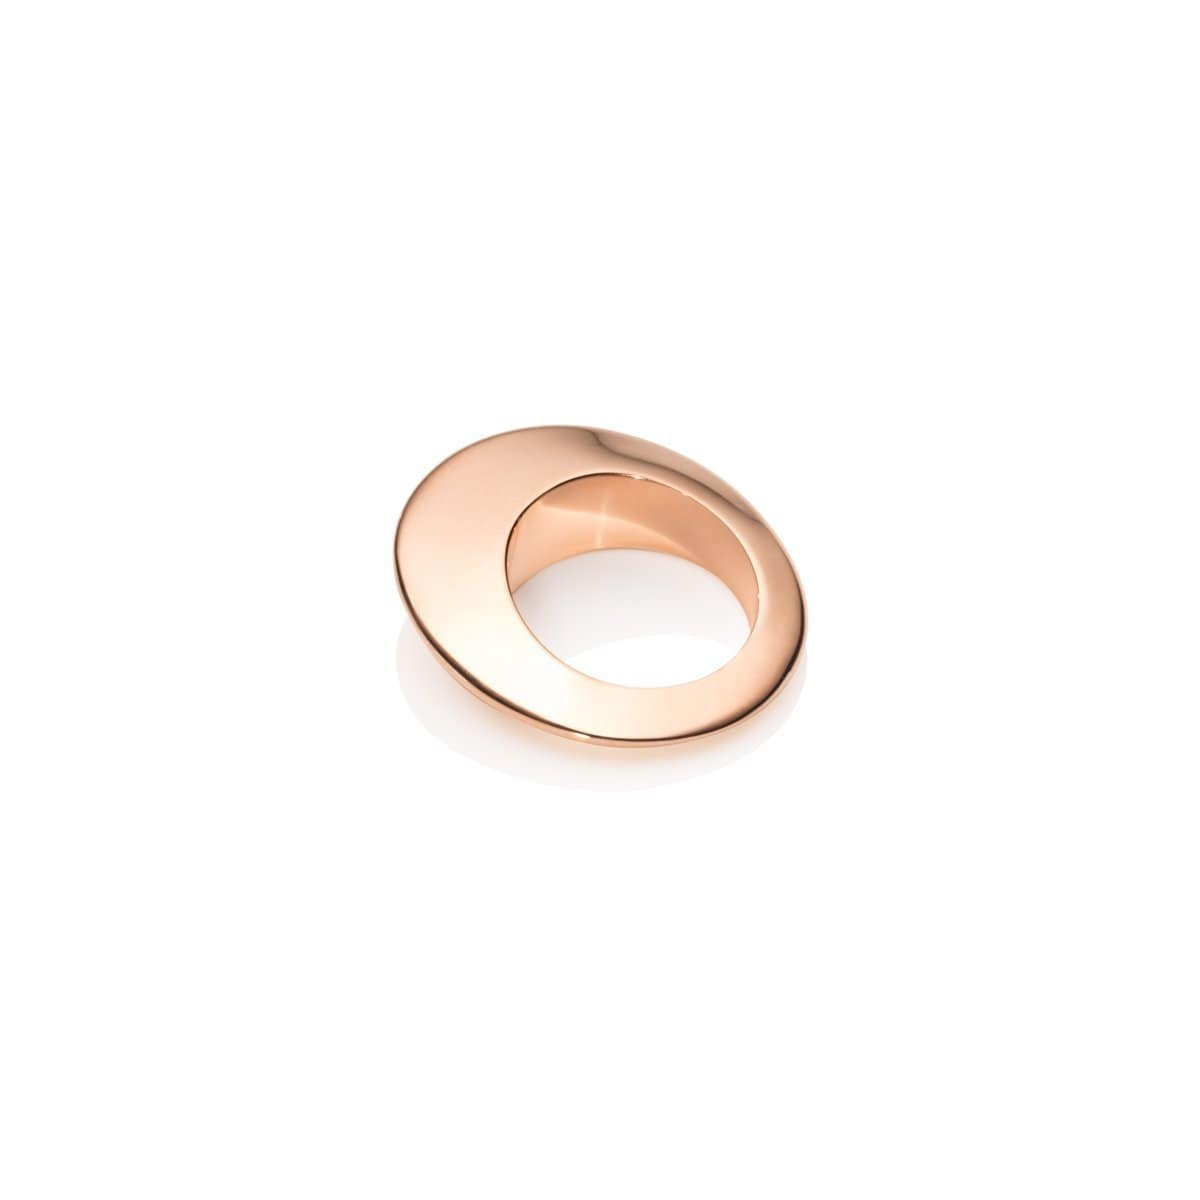 Hvar Ring (Rose Gold)